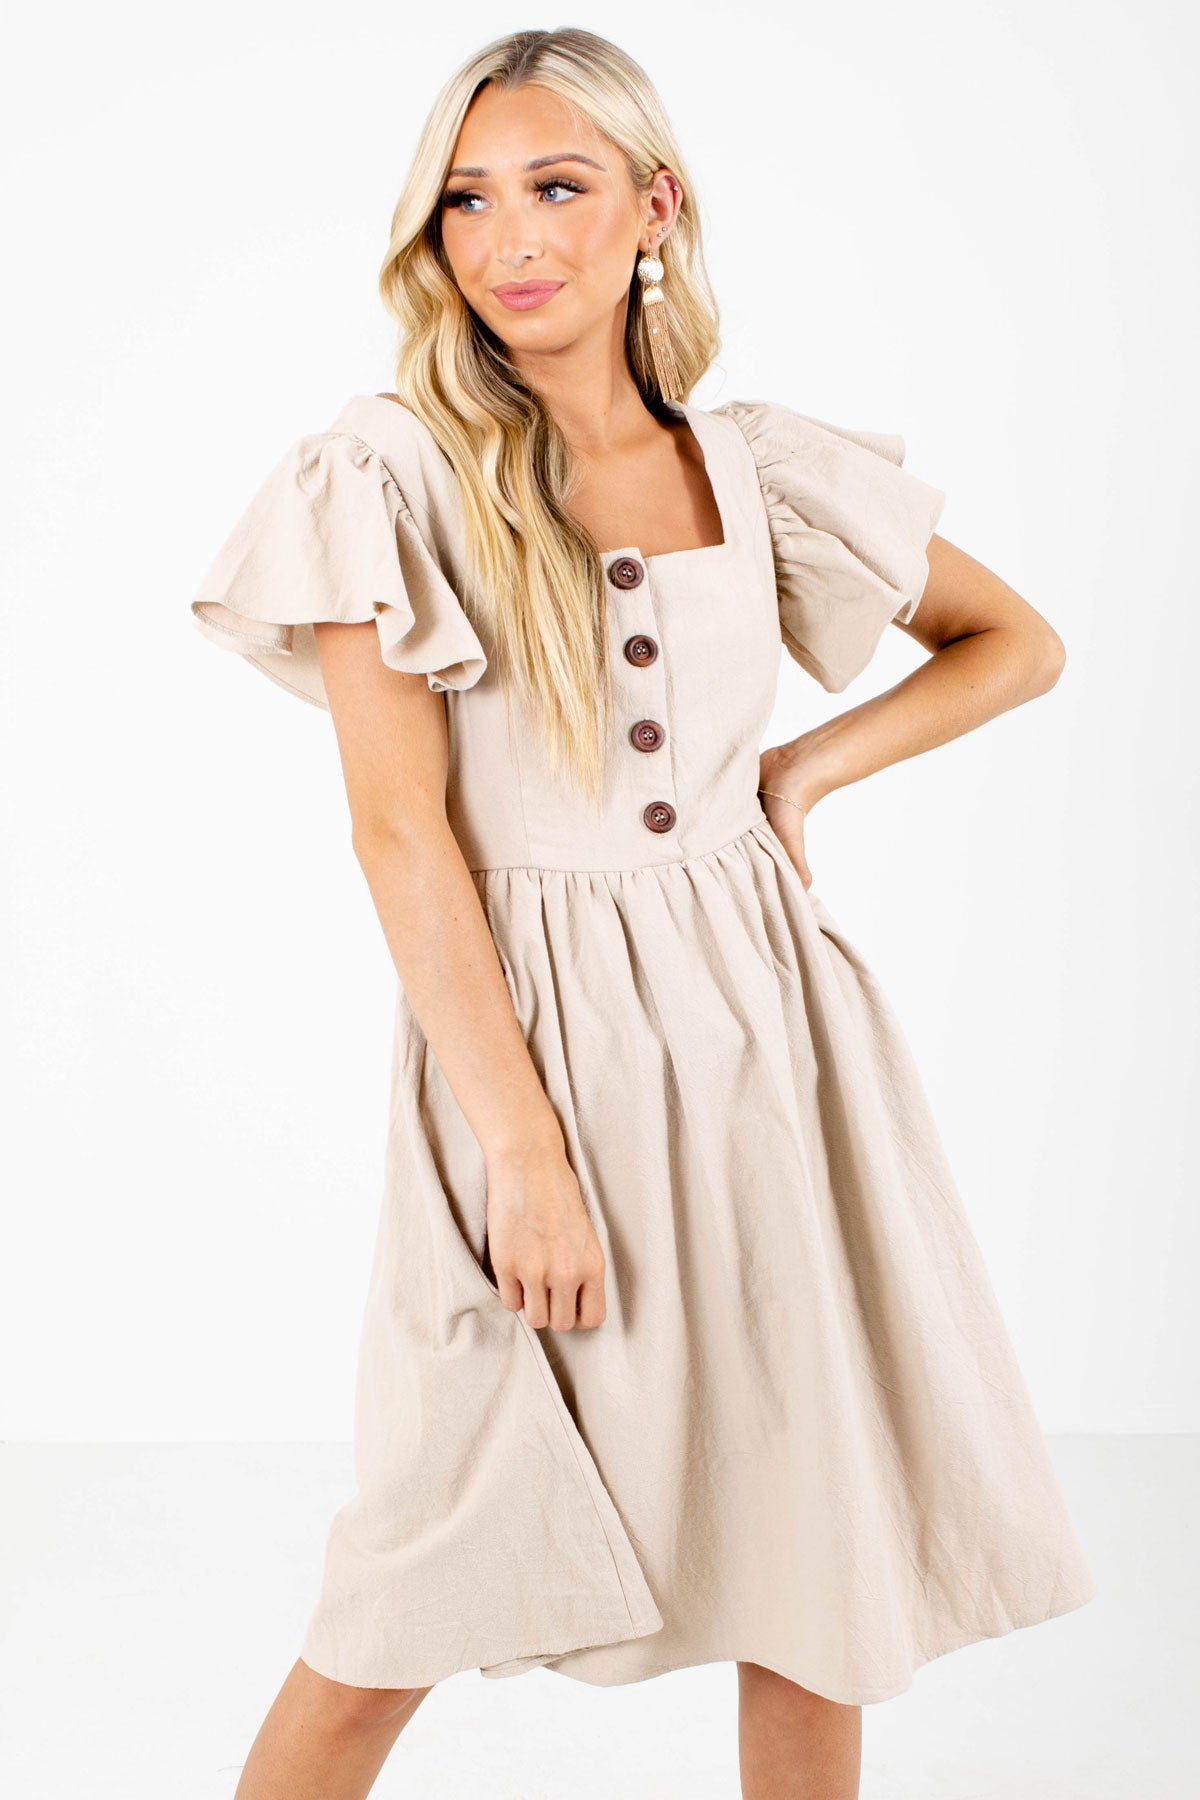 Taupe Brown Button-Up Bodice Boutique Knee-Length Dresses for Women